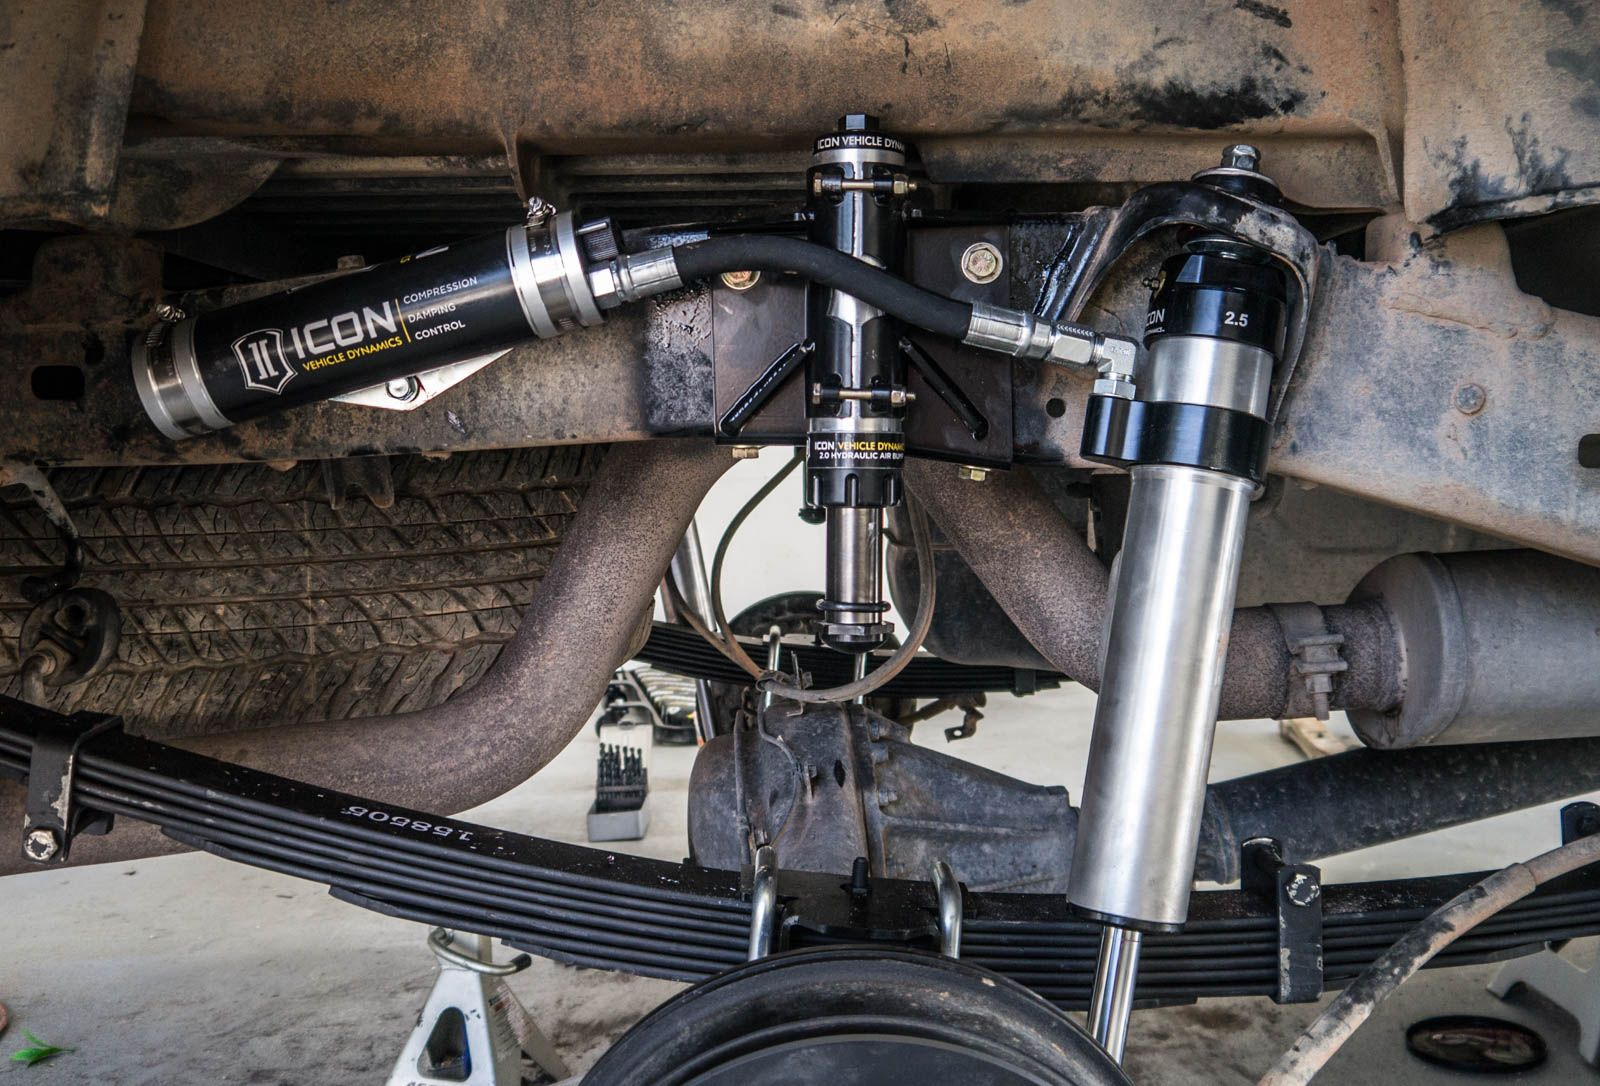 ICON RXT Suspension System on the Toyota 4WD with